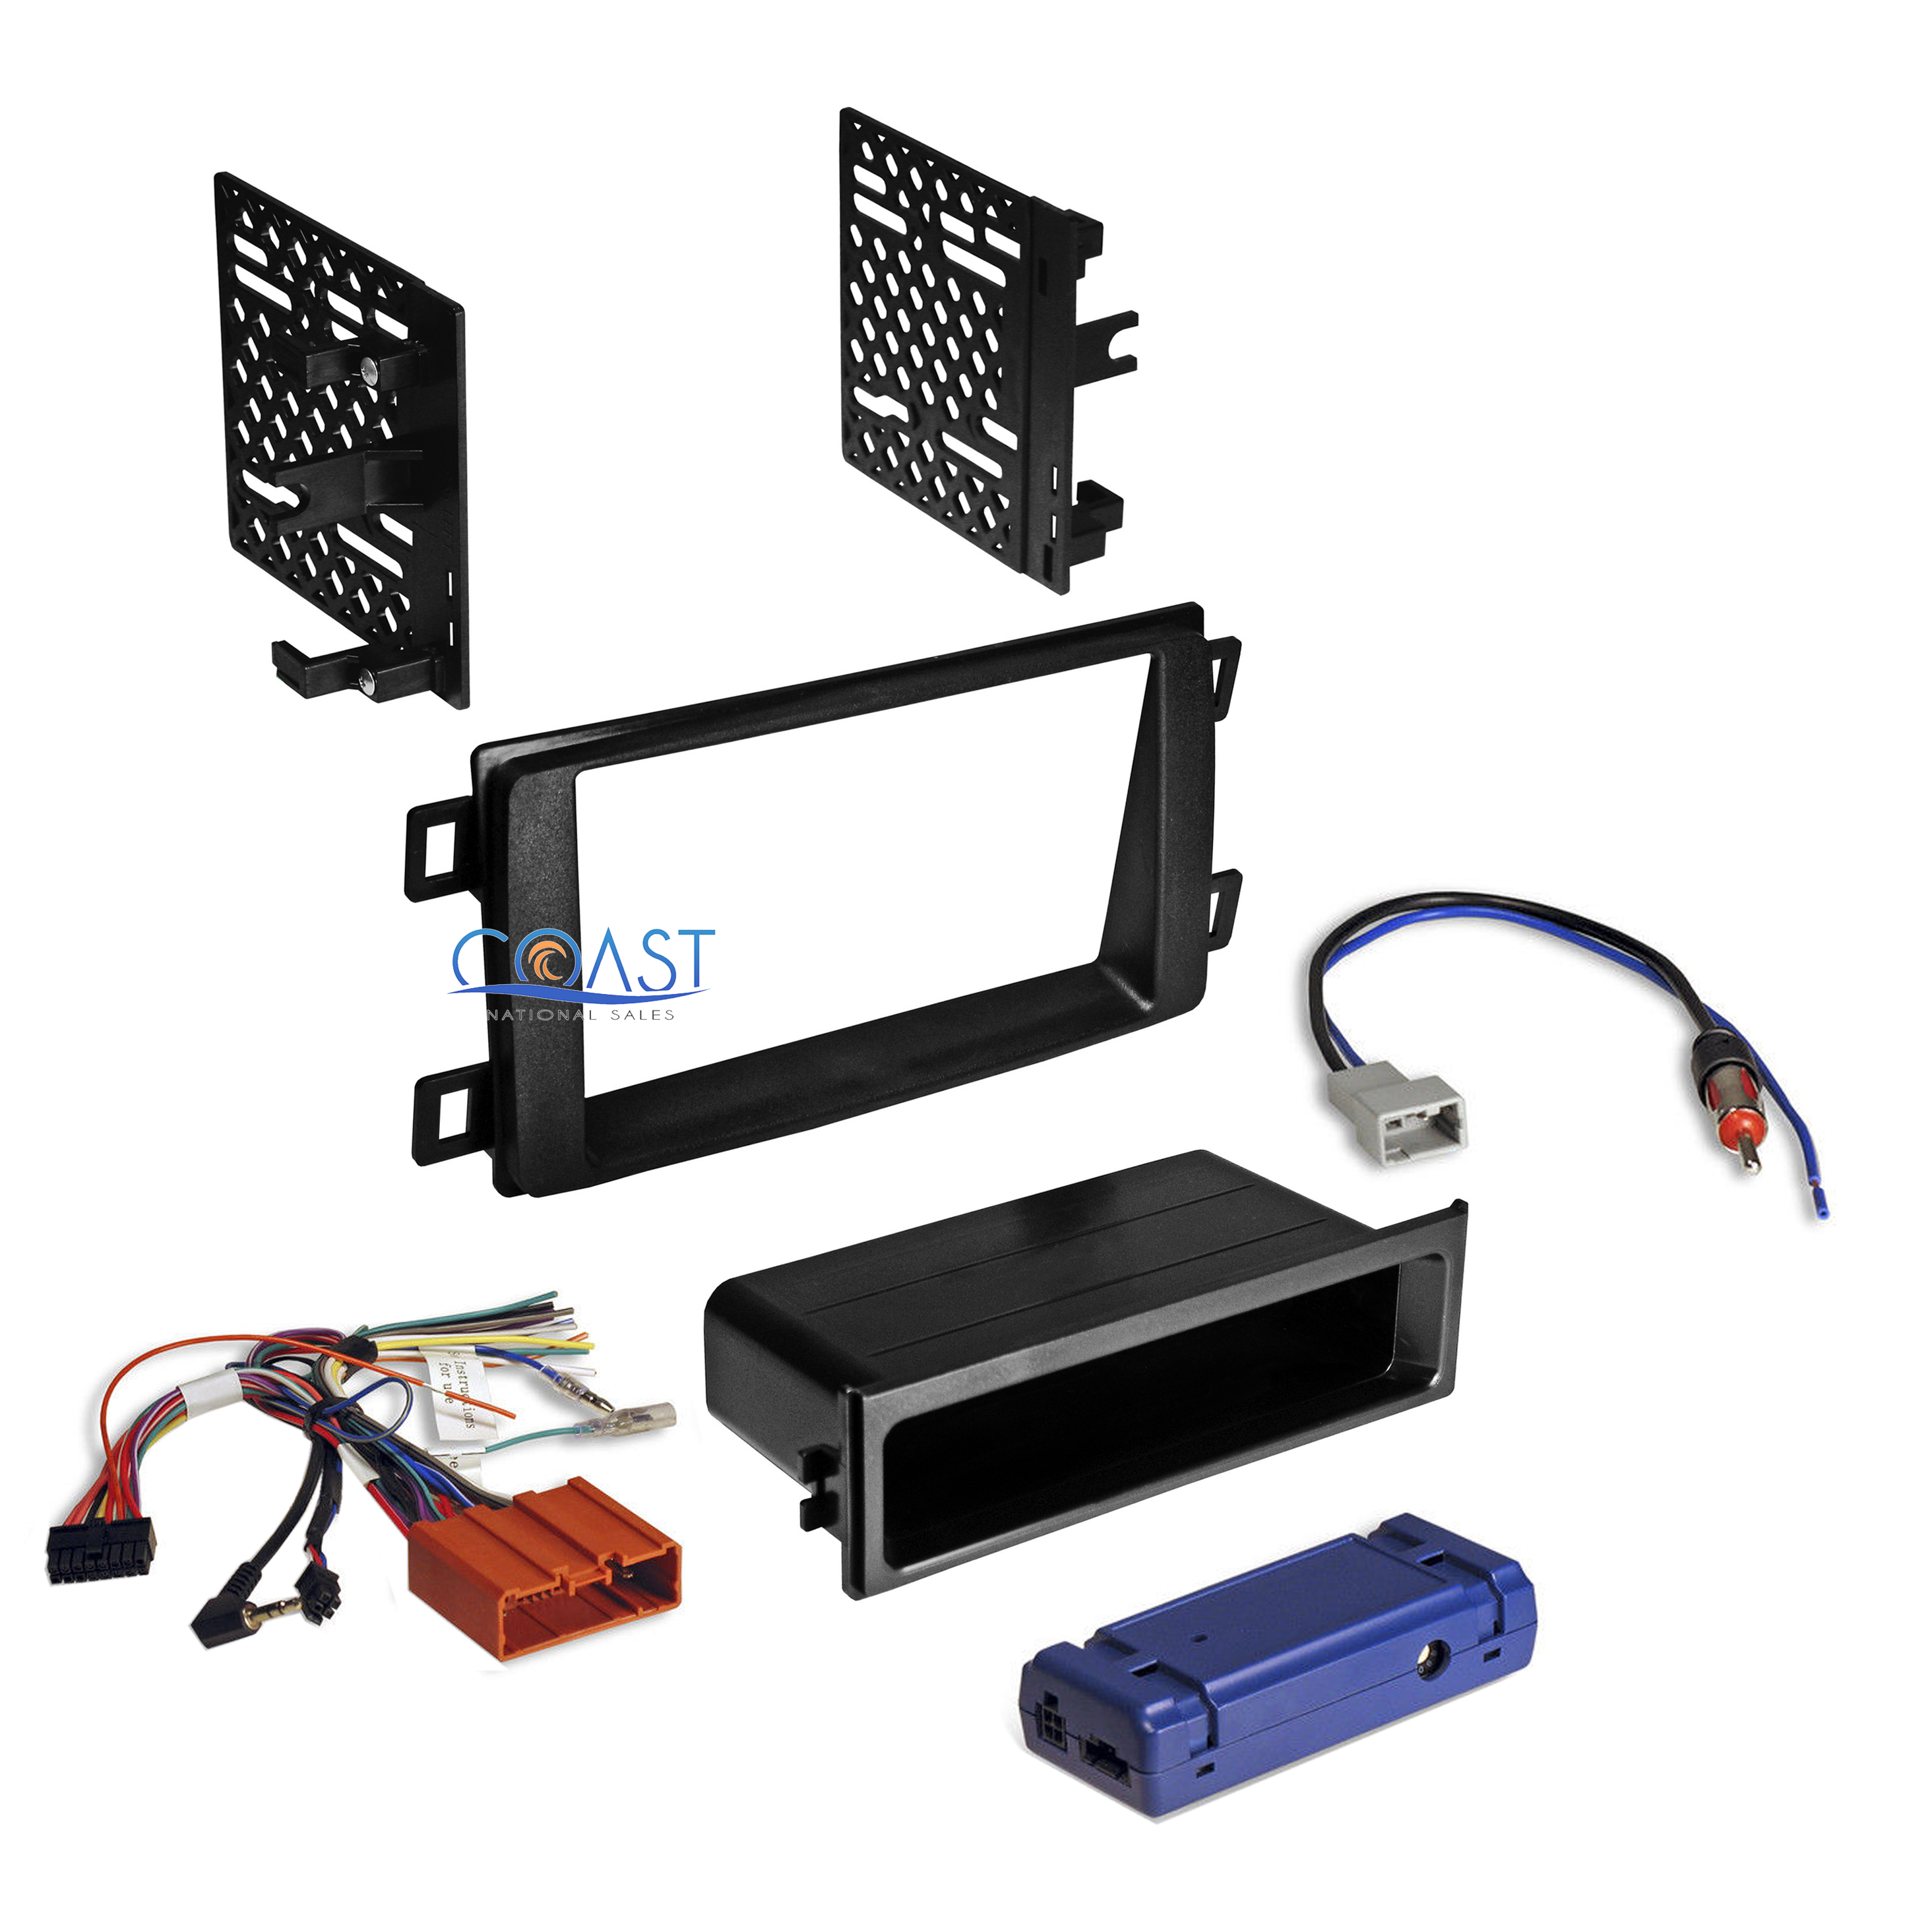 2003 Mazda Protege Radio Wiring: Car Radio Stereo Double Din Dash Kit Wiring Harness For